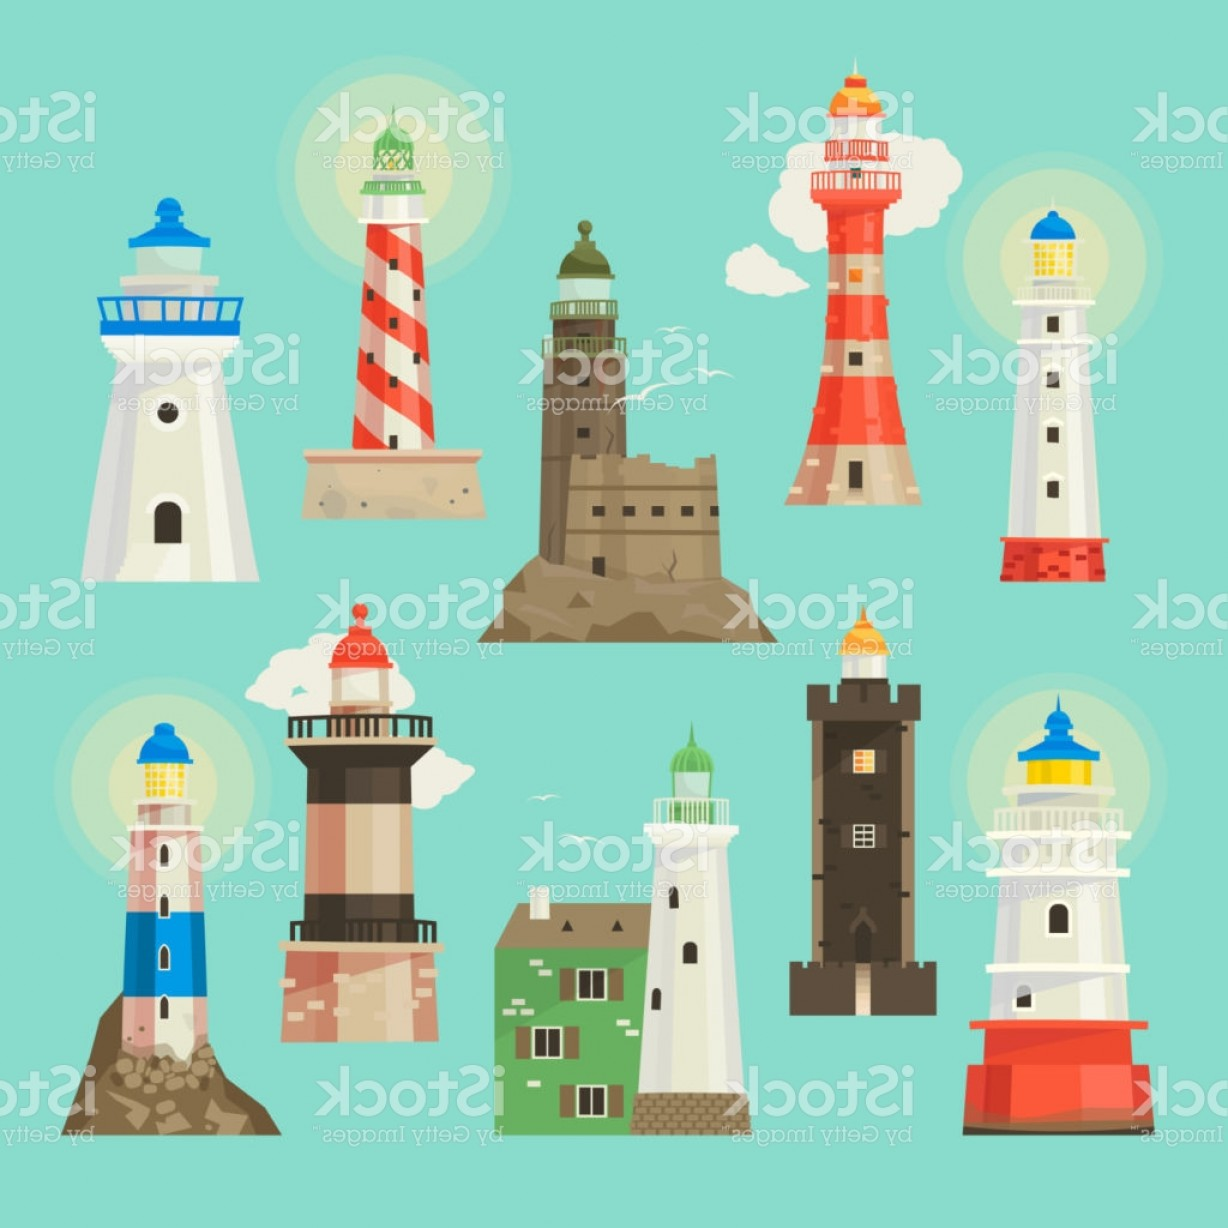 Lighthouse Beacon Silhouette Vector: Lighthouse Vector Beacon Lighter Beaming Path Of Lighting To Ses From Seaside Coast Gm